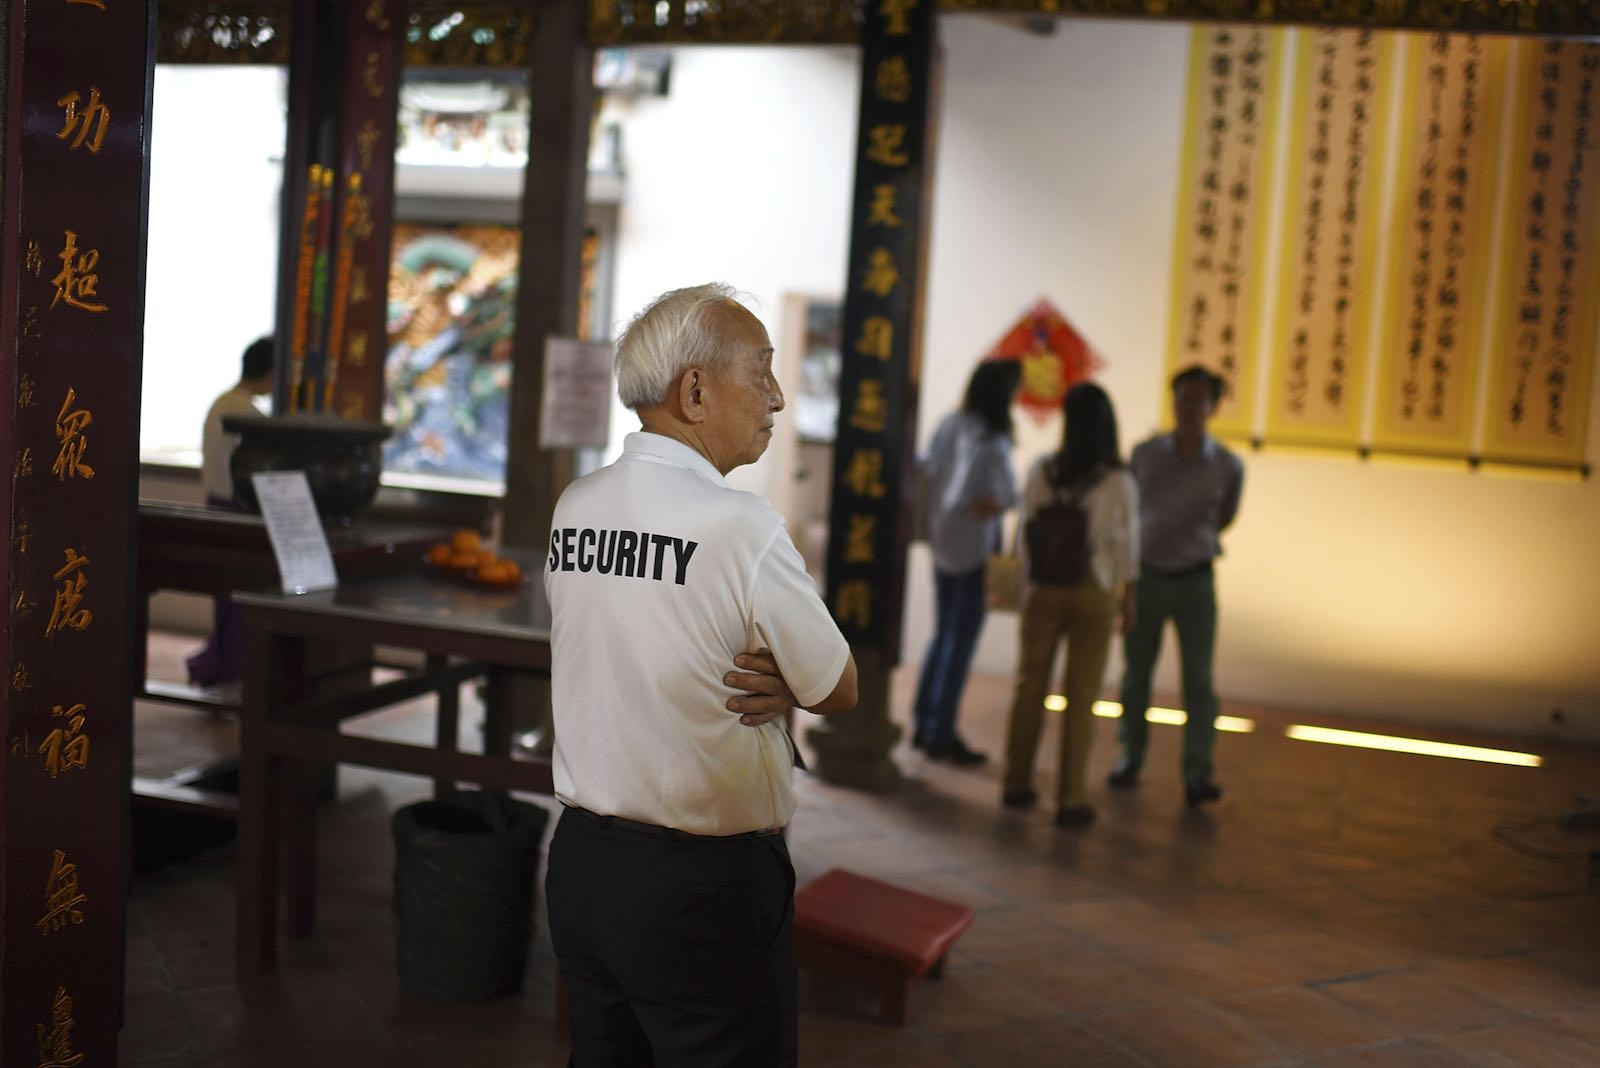 Wong, a 72-year-old security guard, keeps watch at temple during the Chinese New Year in Singapore, February 2016. (Borja Sanchez-Trillo/Getty Images)